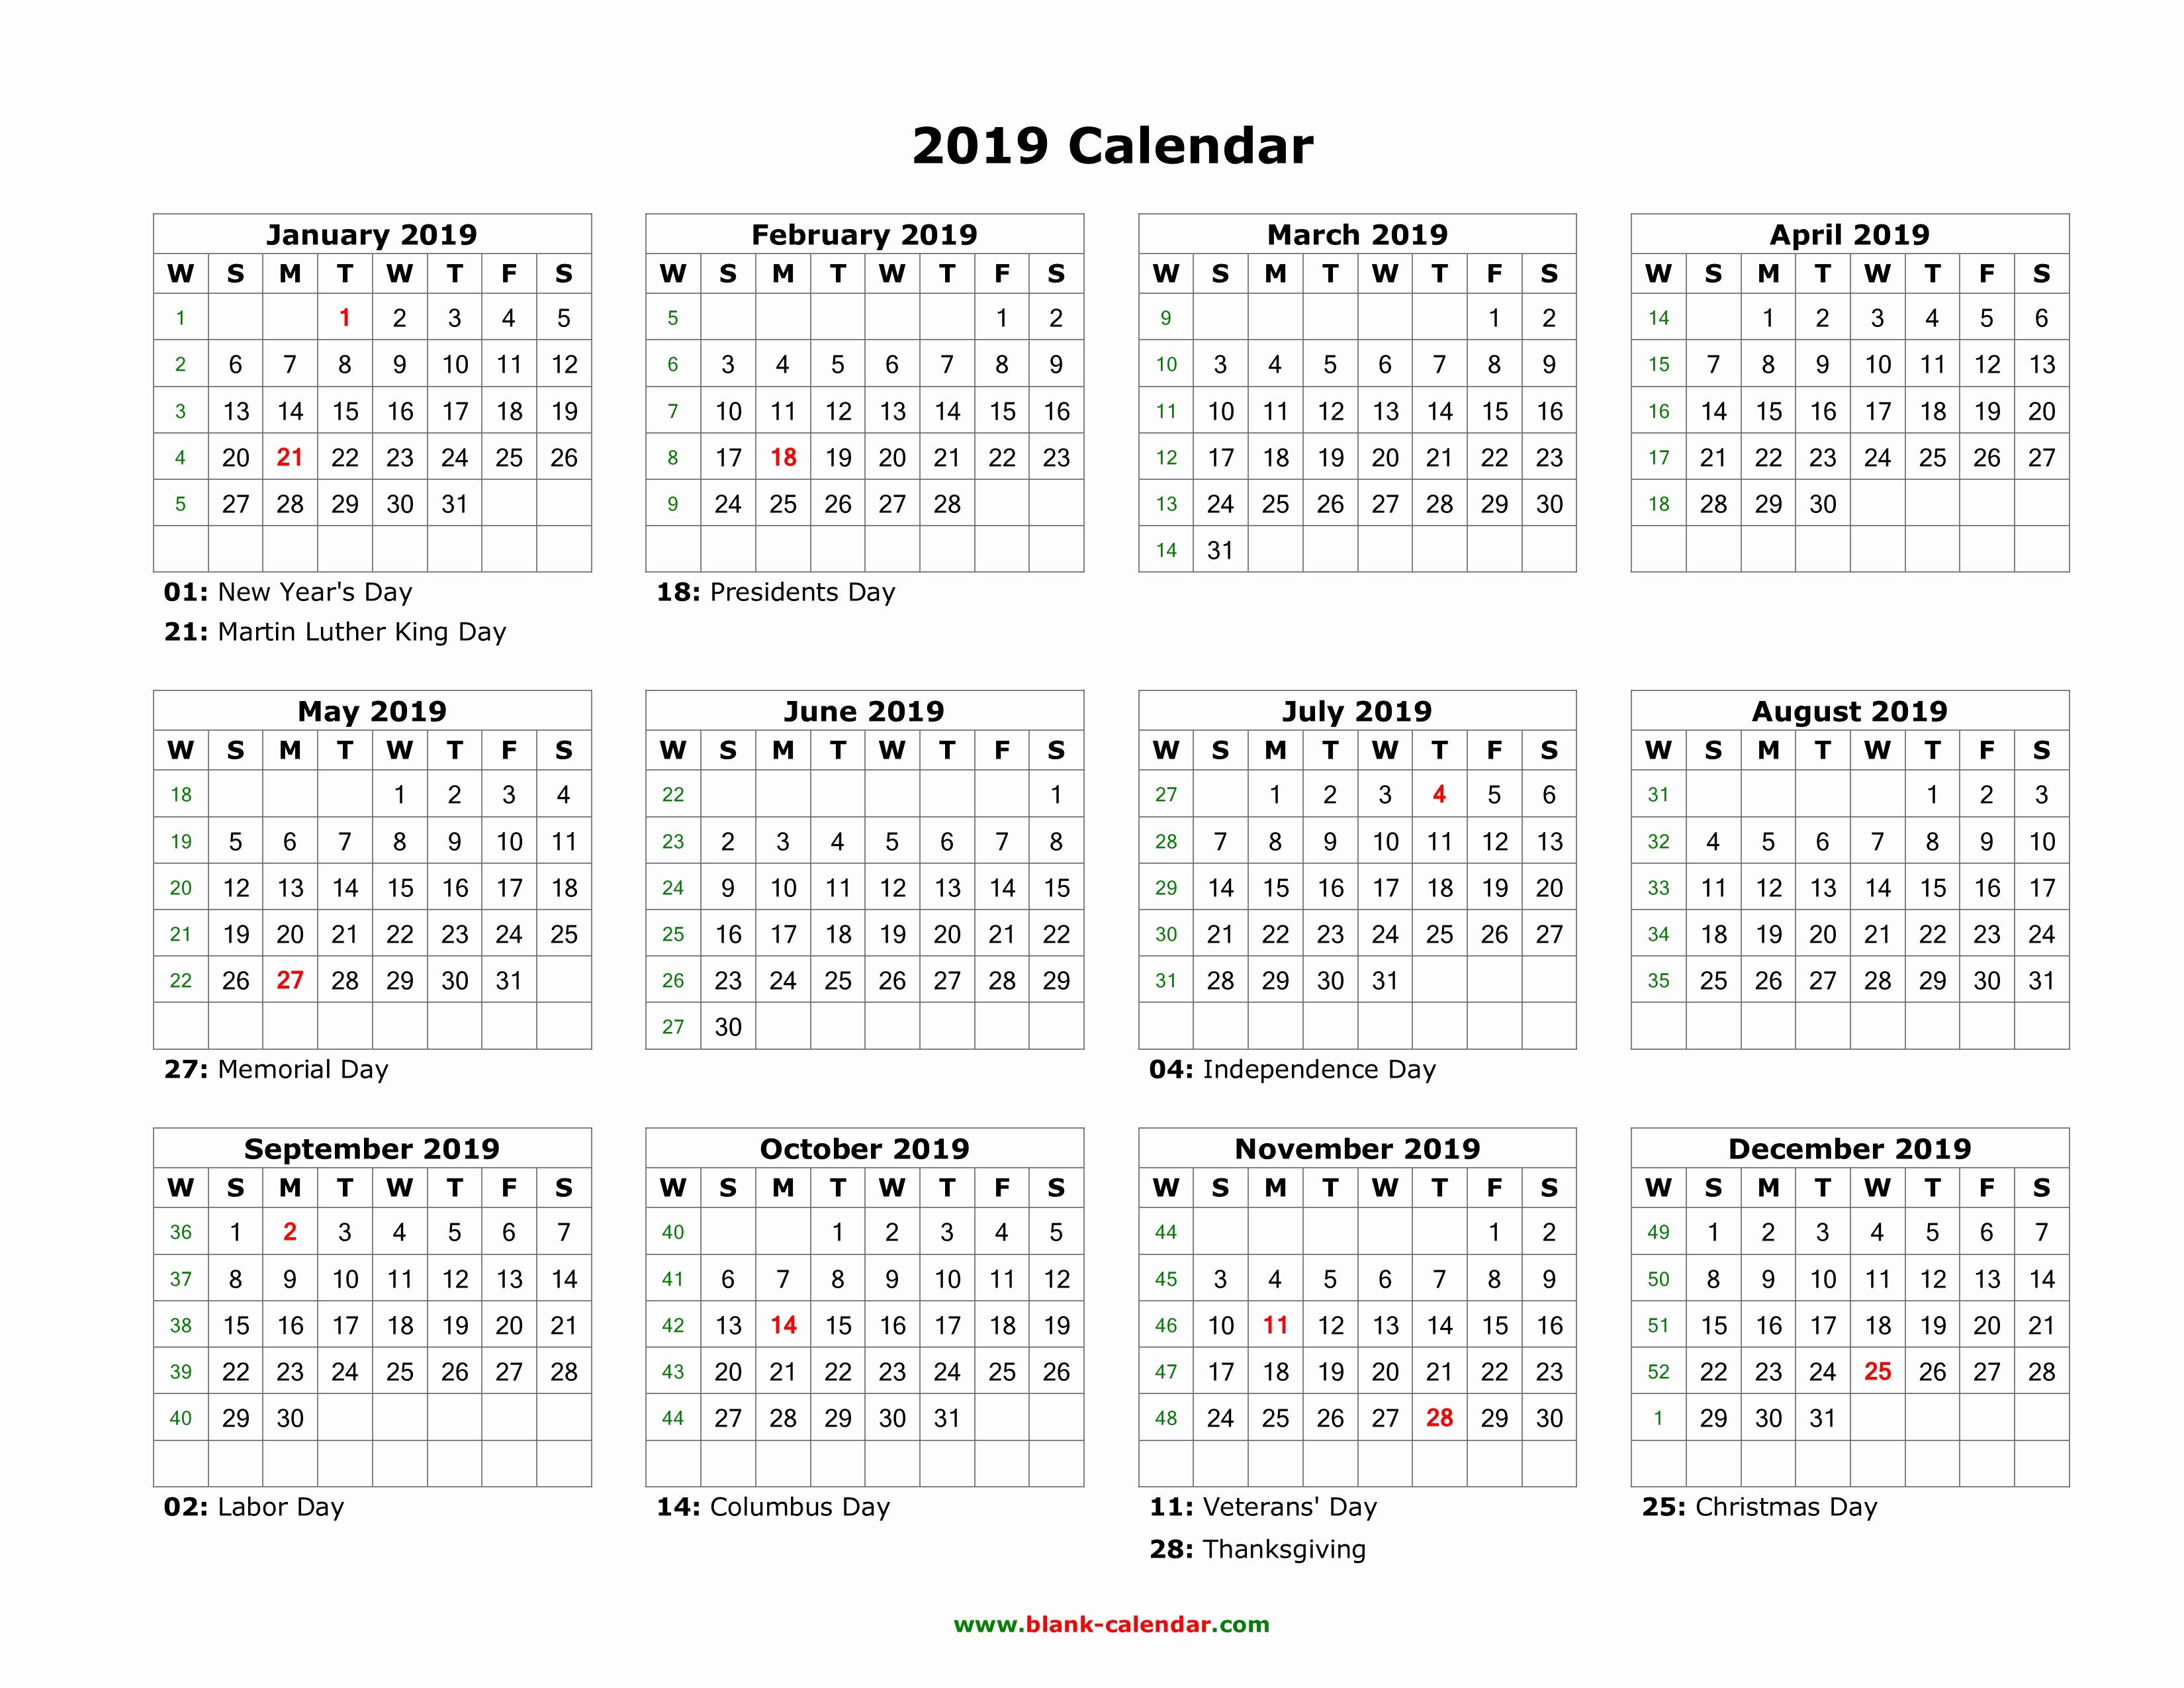 Days Of the Week Horizontal Fresh Download Blank Calendar 2019 with Us Holidays 12 Months